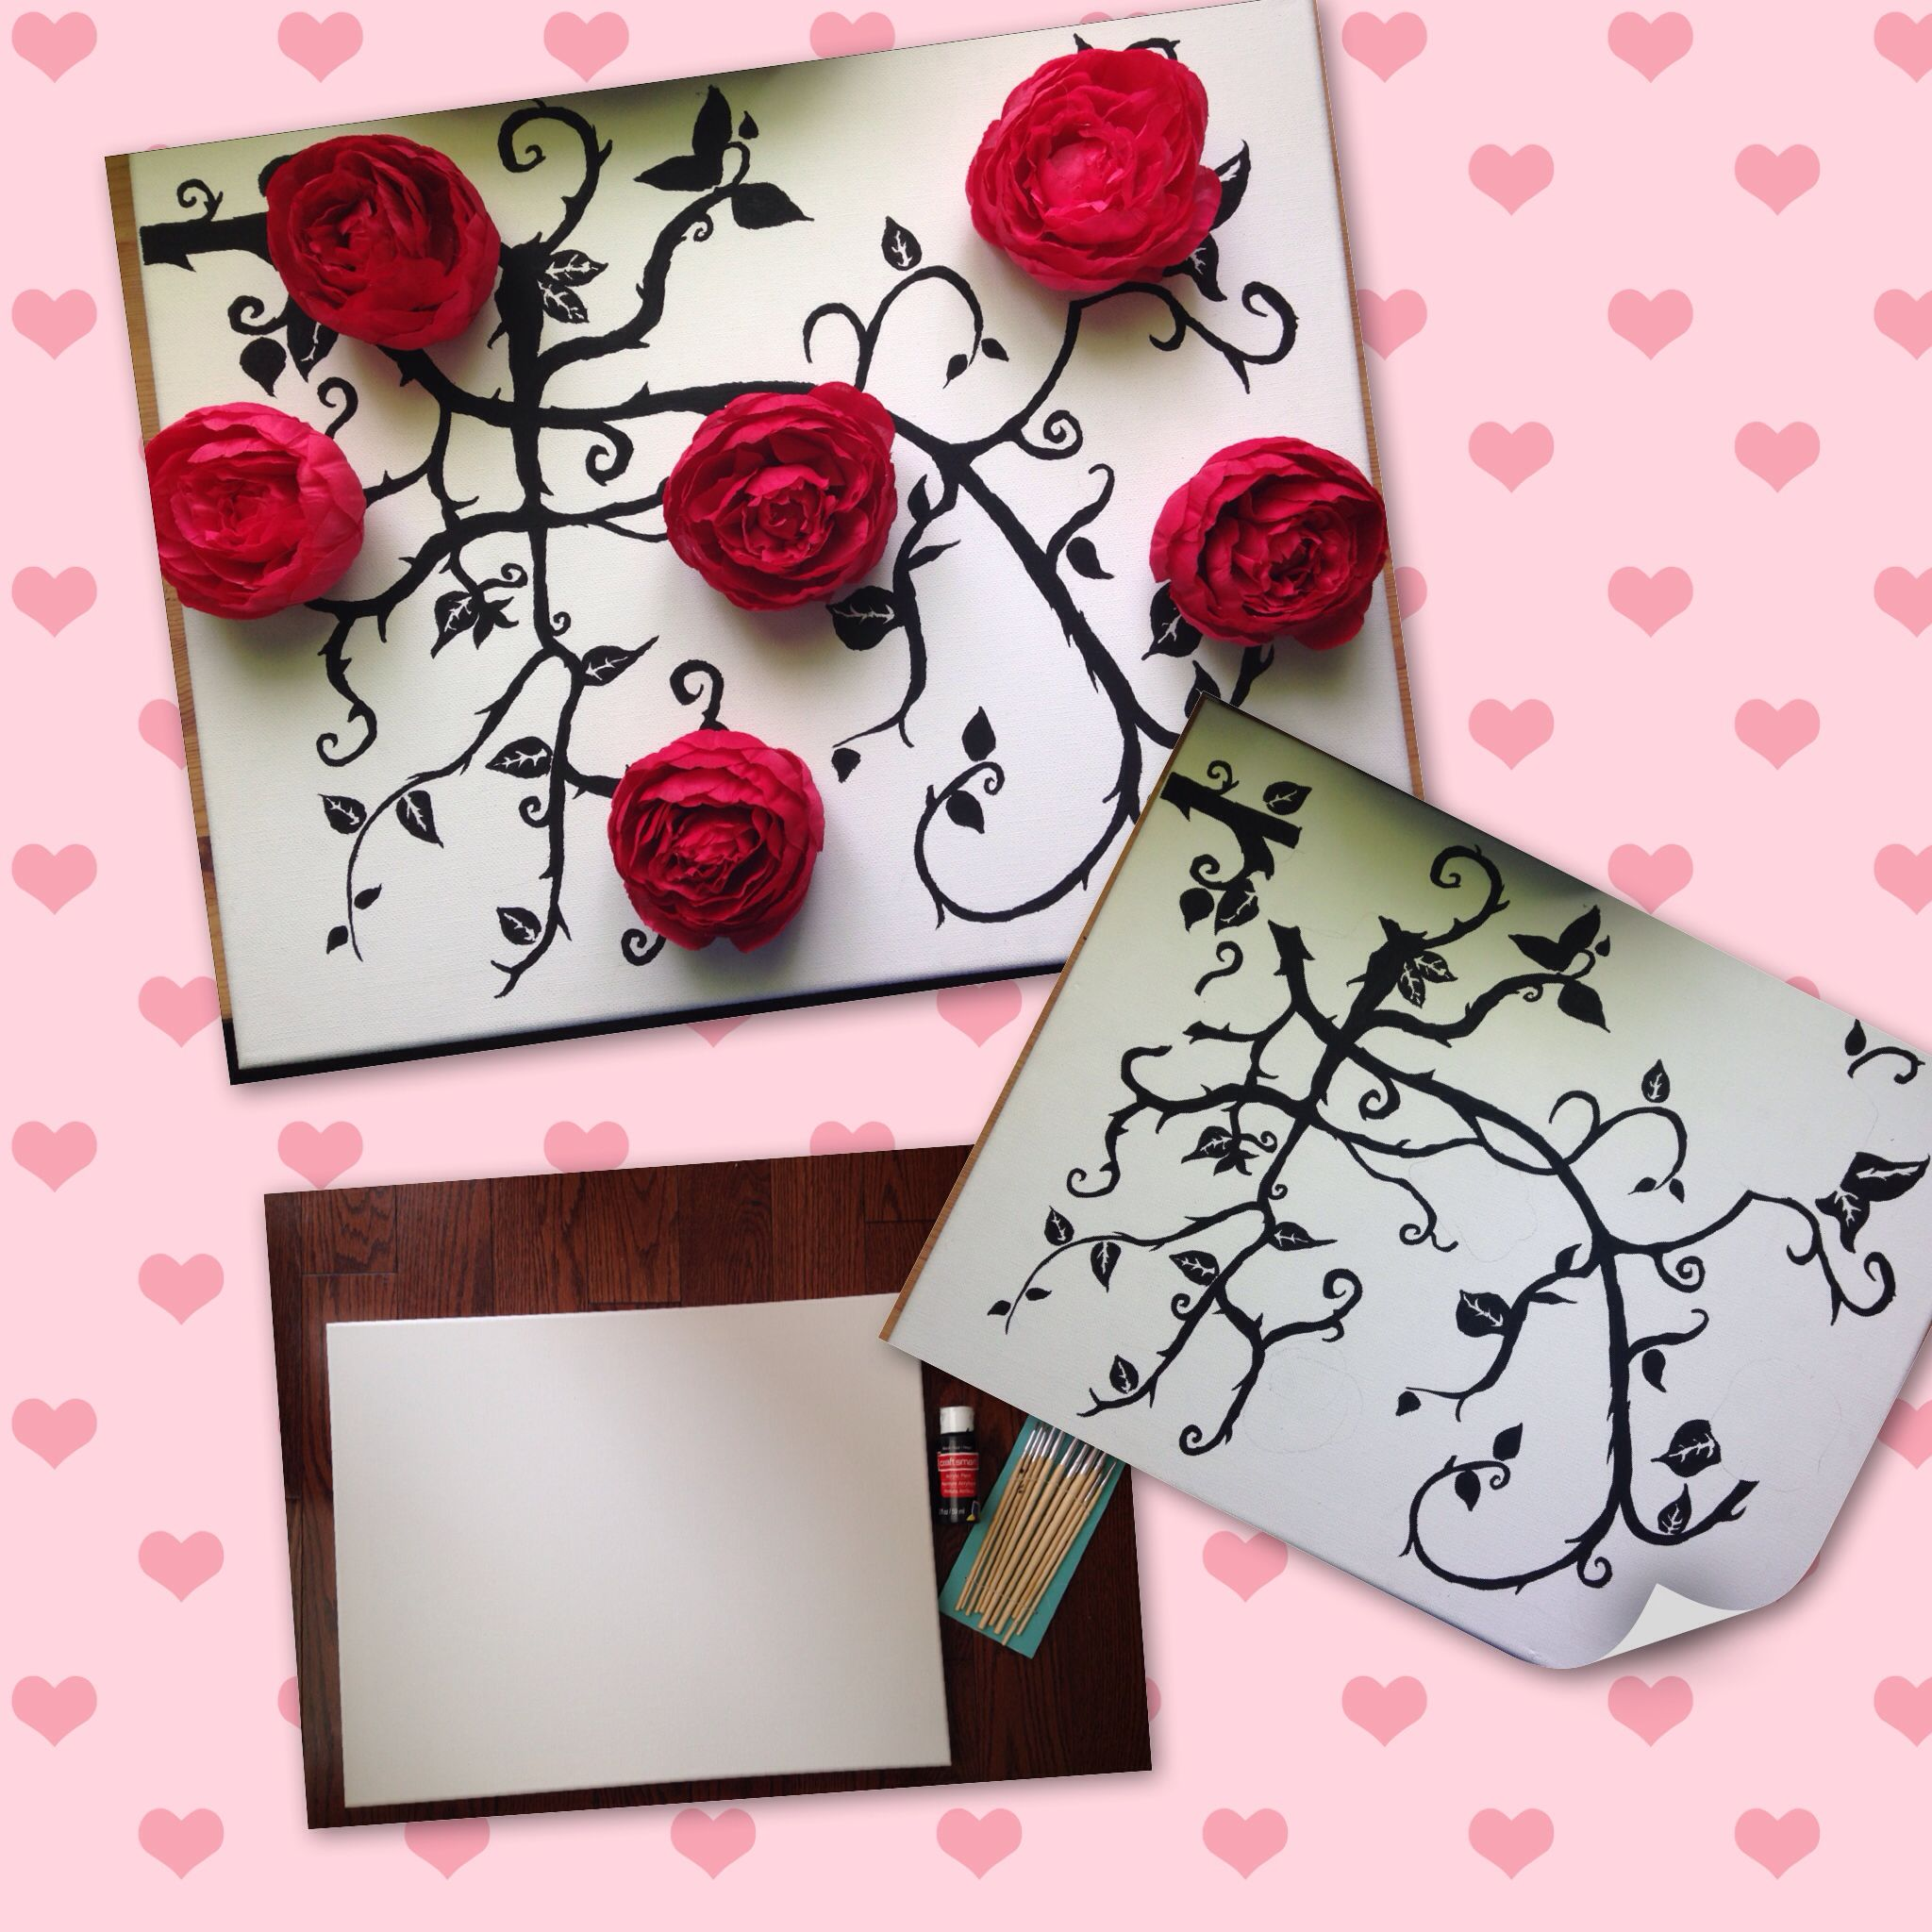 3D Floral wall art project. Simple,yet elegant and easy to do!